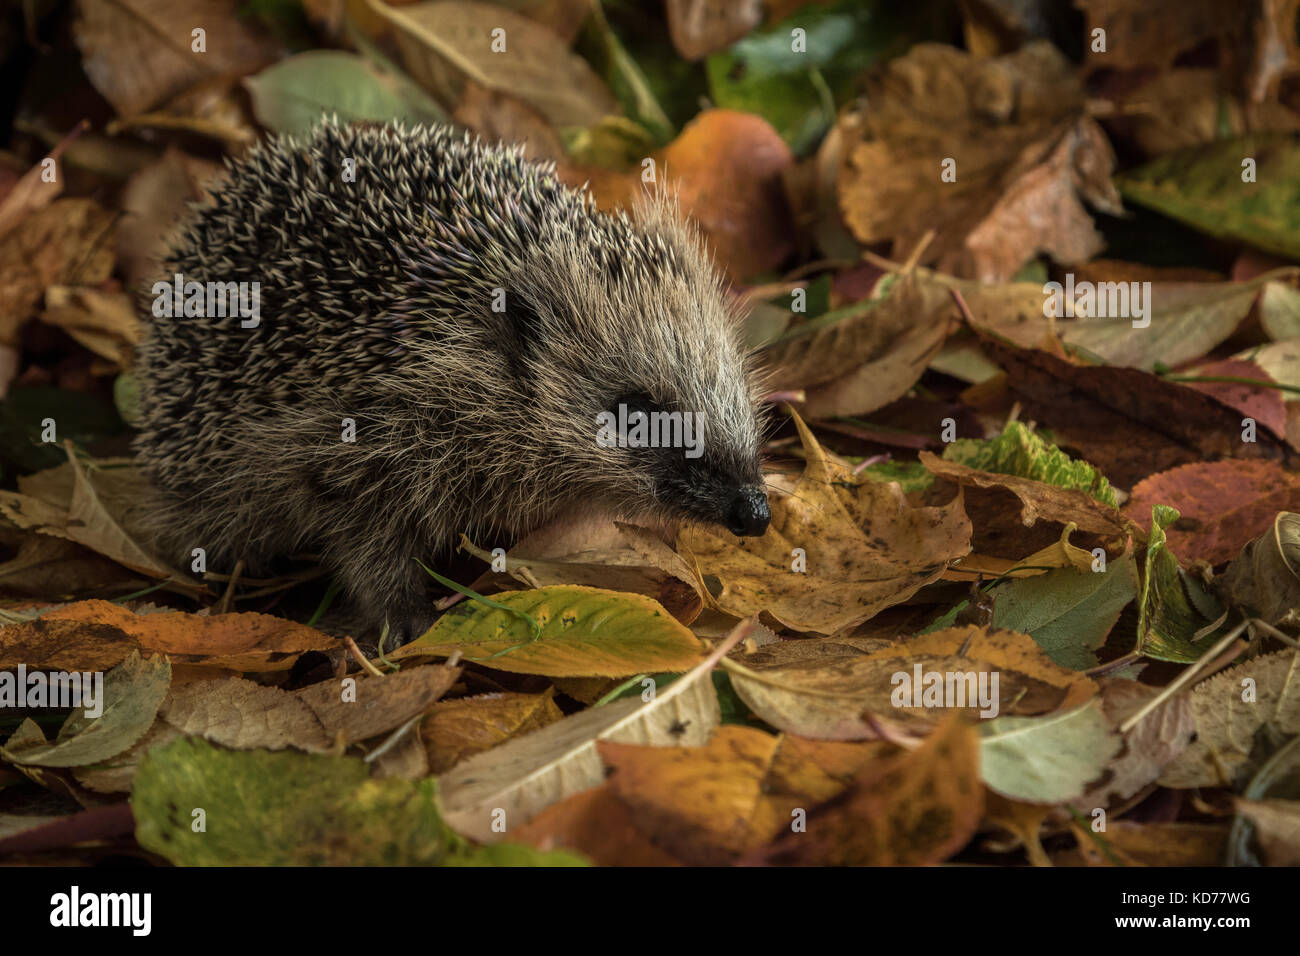 hedgehog in autumn leaves - Stock Image